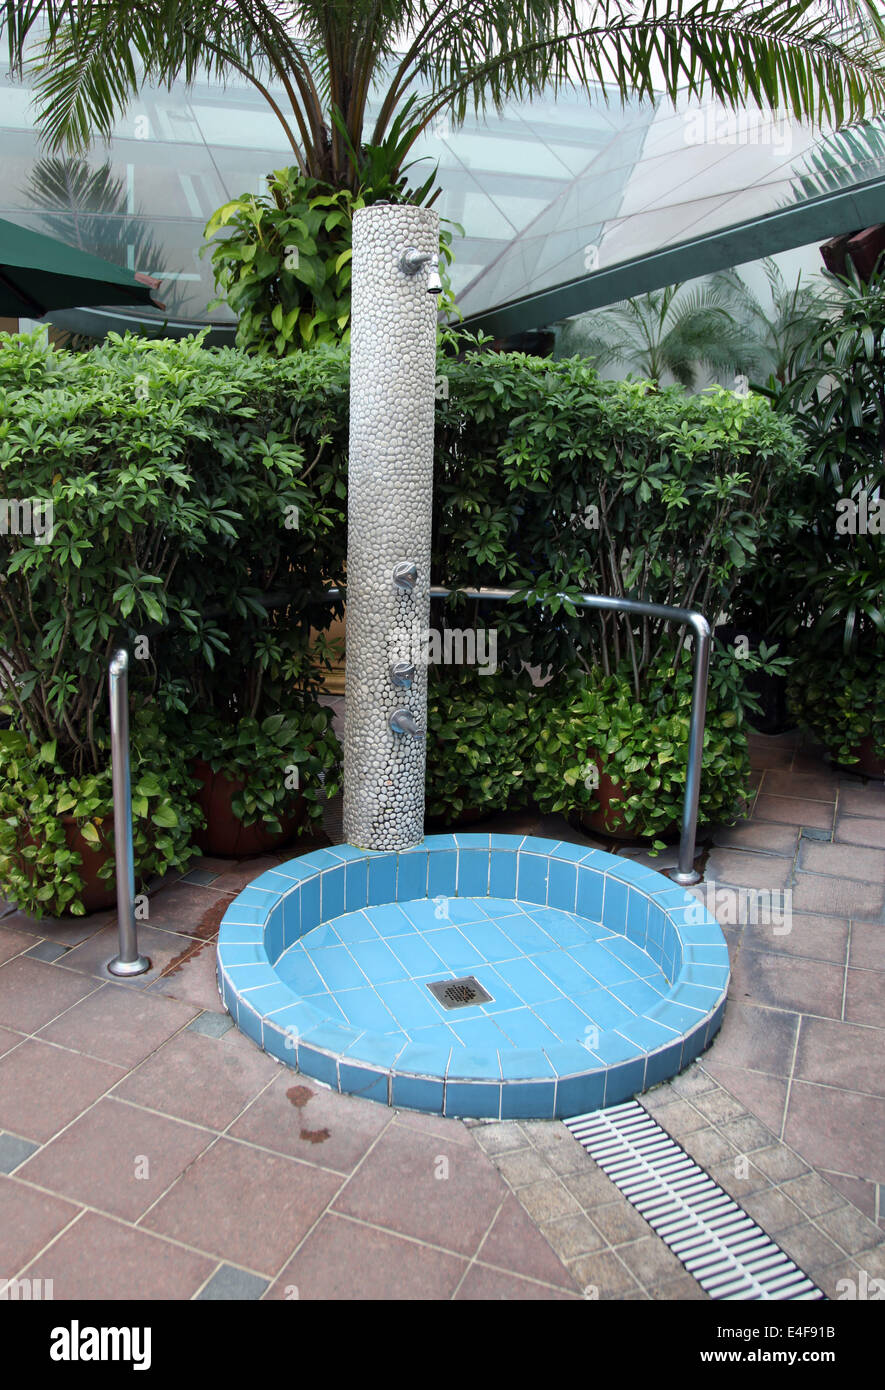 It\'s a photo of an outdoor shower in a resort hotel near a swimming ...